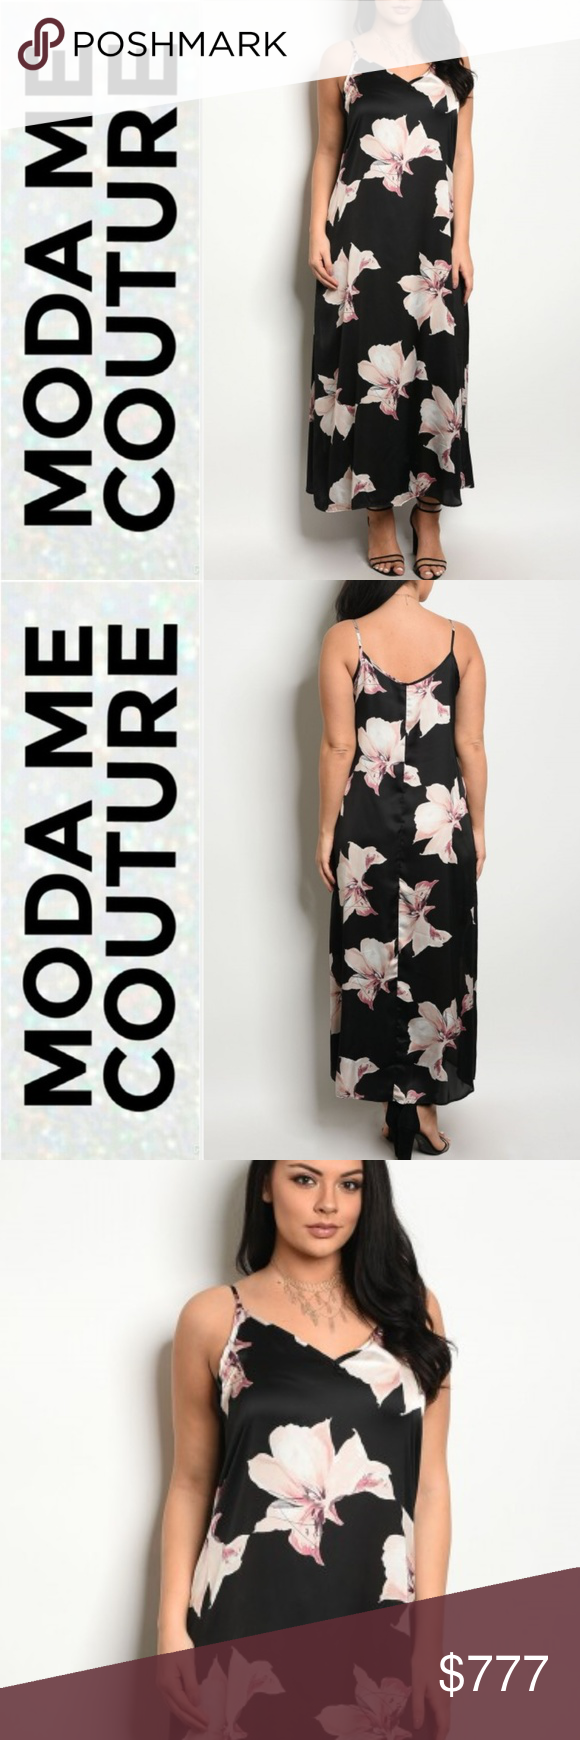 "S/S 2018 OVERSIZE FLORAL PRINT MAXI DRESS BRAND NEW BOUTQIUE ITEM PRICE IS FIRM  FROM OUR SPRING/SUMMER 2018 COLLECTION!!  FABULOUS IN FLORALS this plus size oversized floral print satin maxi dress features a V neckline, spaghetti straps and a classy fit. Grab your statement earrings and heels. You can also pair this with a demin jacket or lovely sweater.  Dress is as seen in pics, modeled in a 1X MADE IN THE USA 100% POLYESTER "" floral flowers vacation cruise getaway party black cream pink"